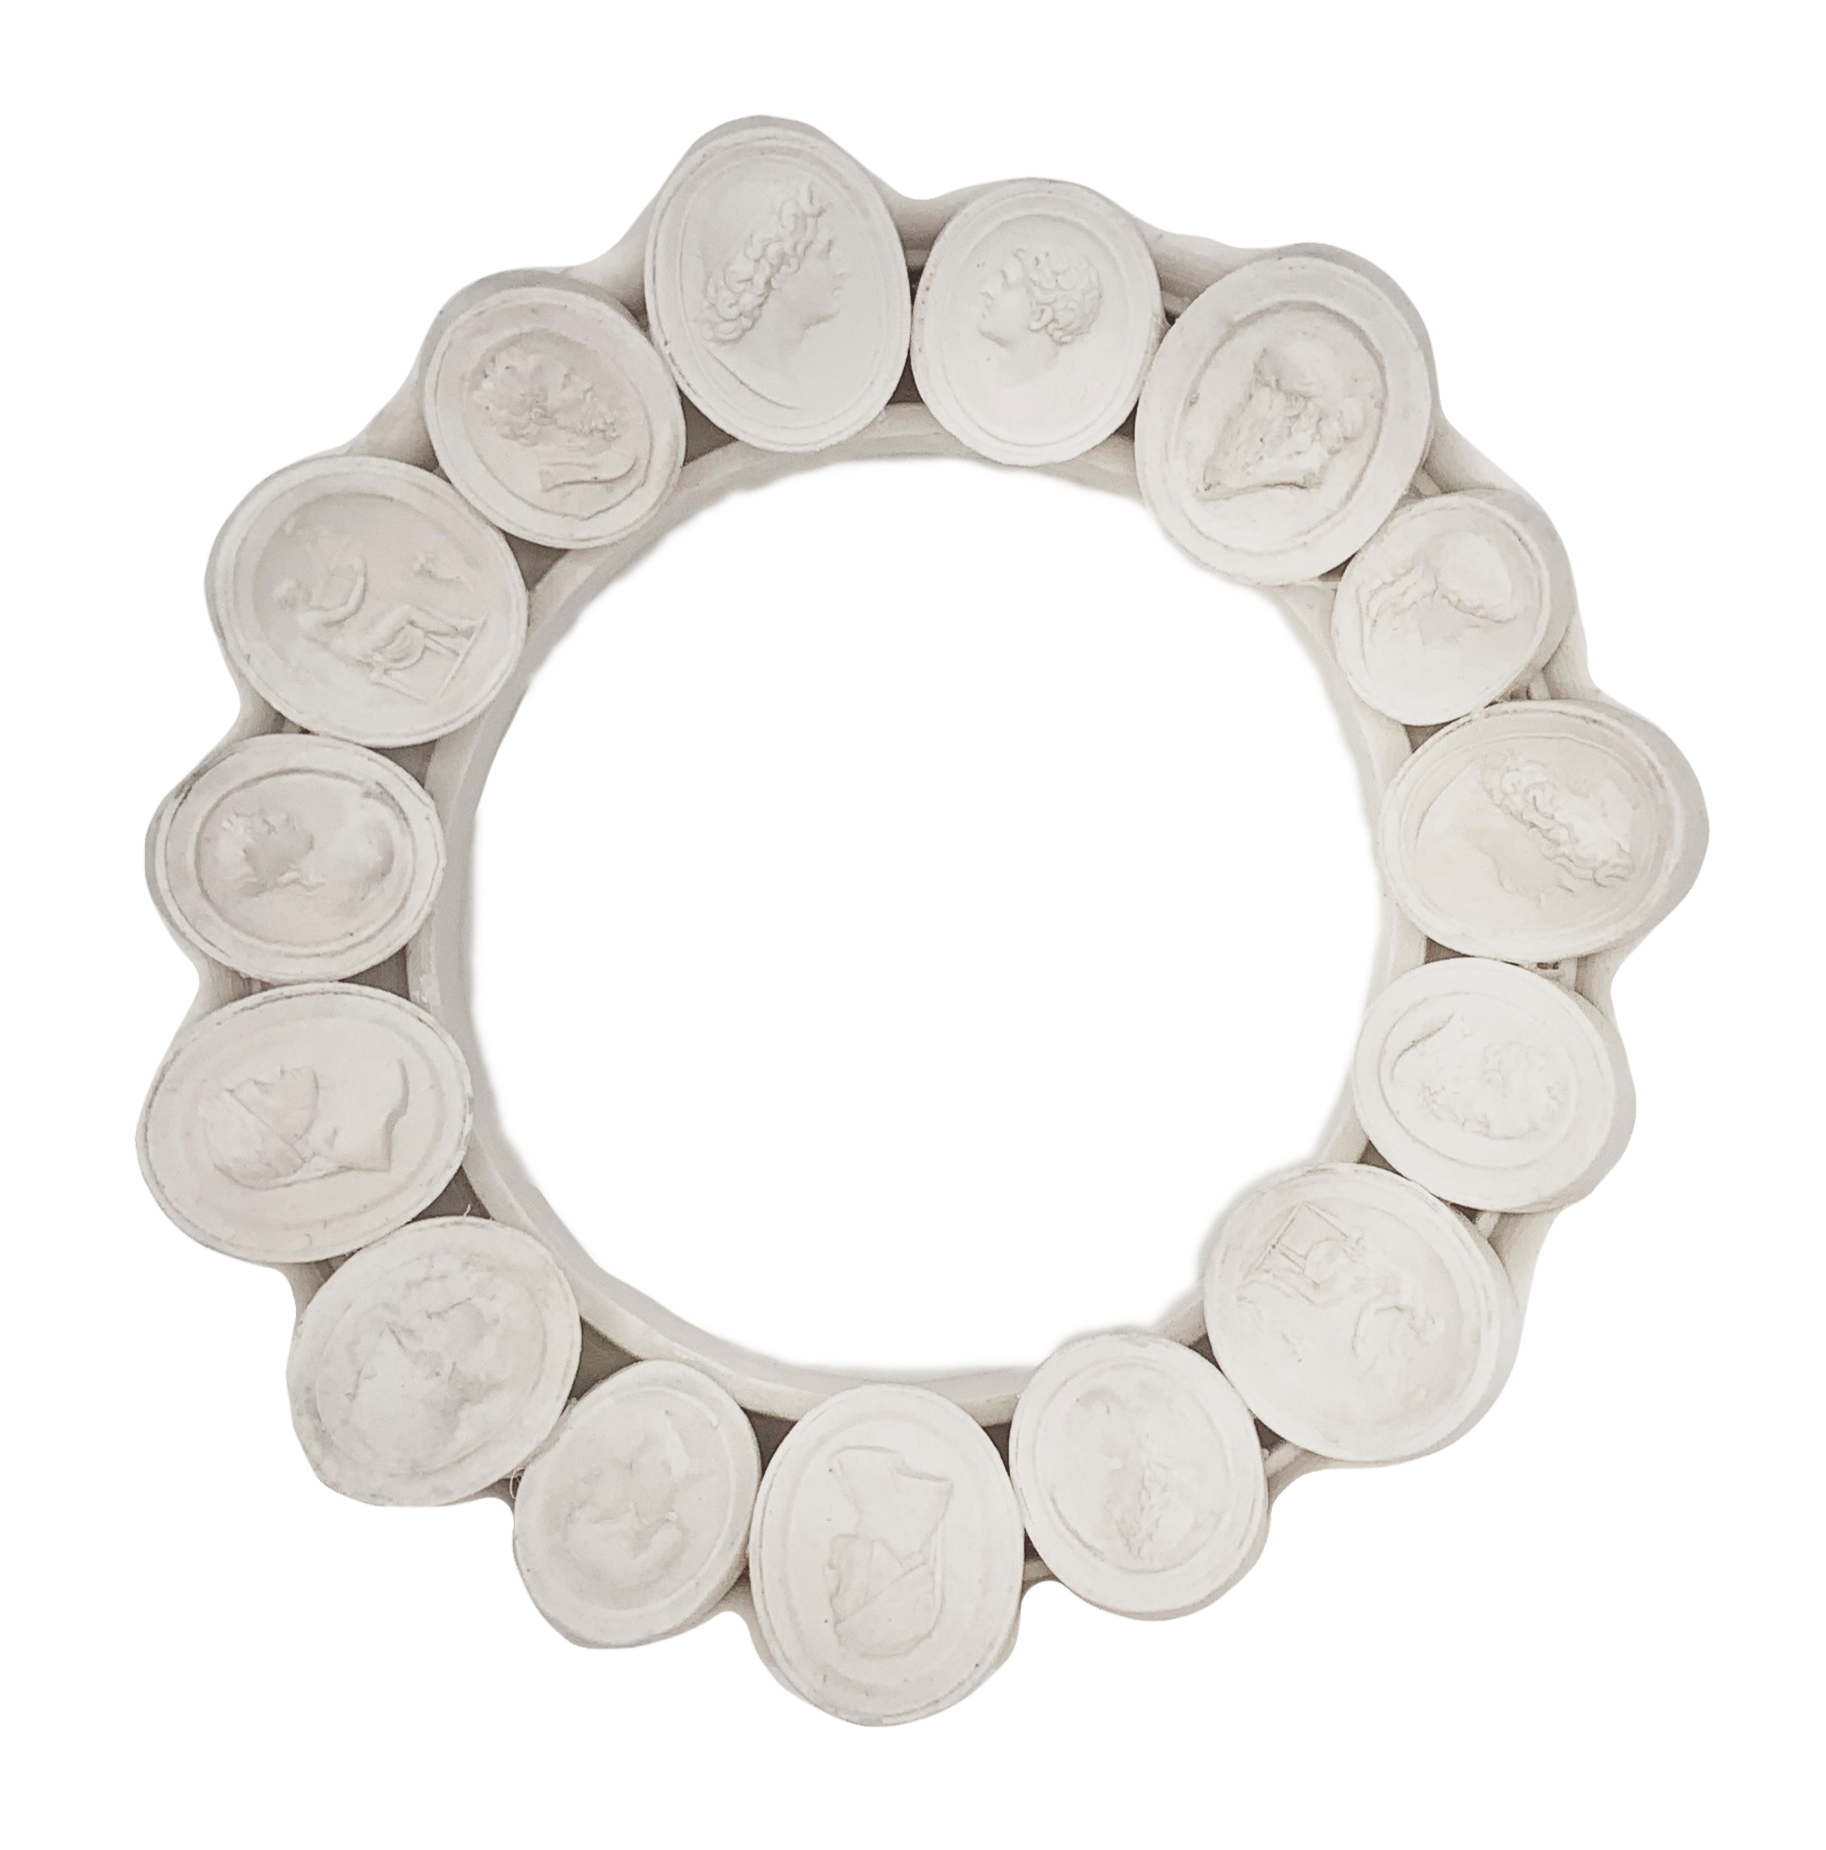 'The Wreath of Faces'